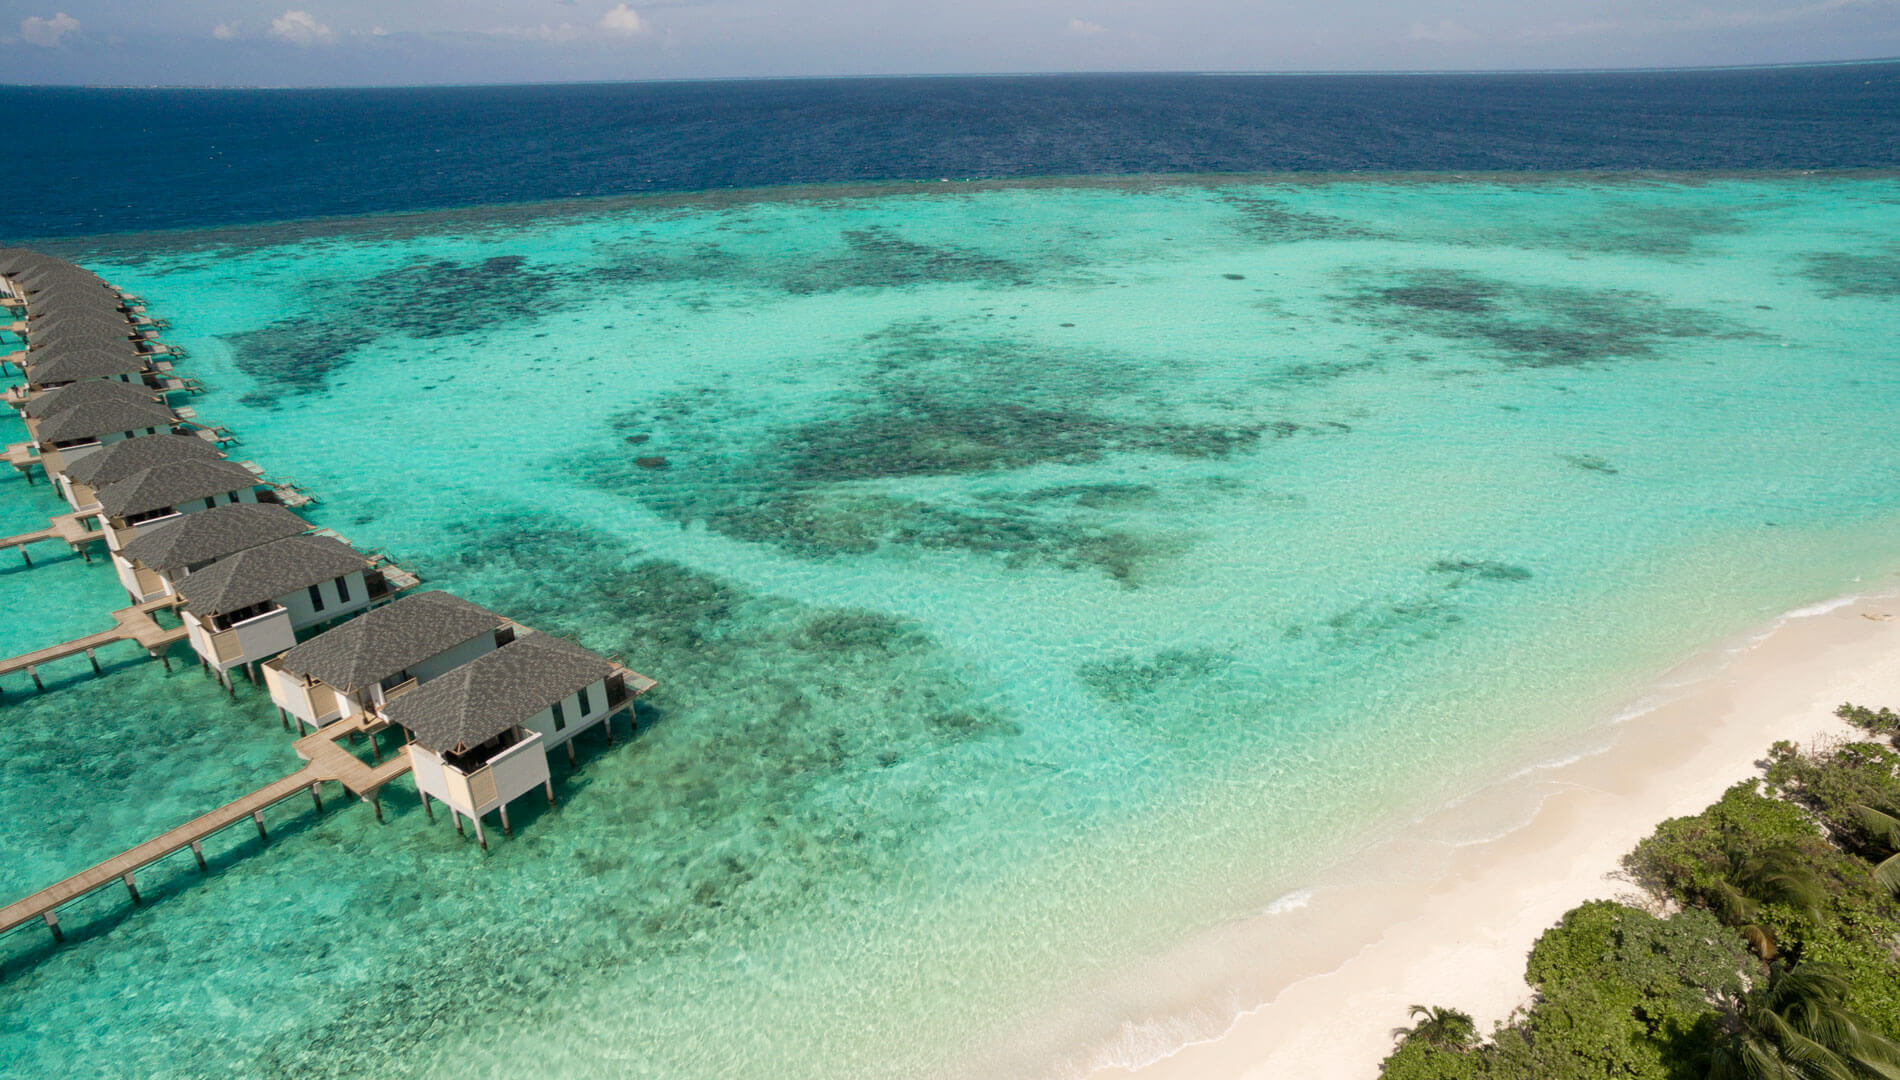 9 Reasons You Have to Visit Amari Havodda Maldives